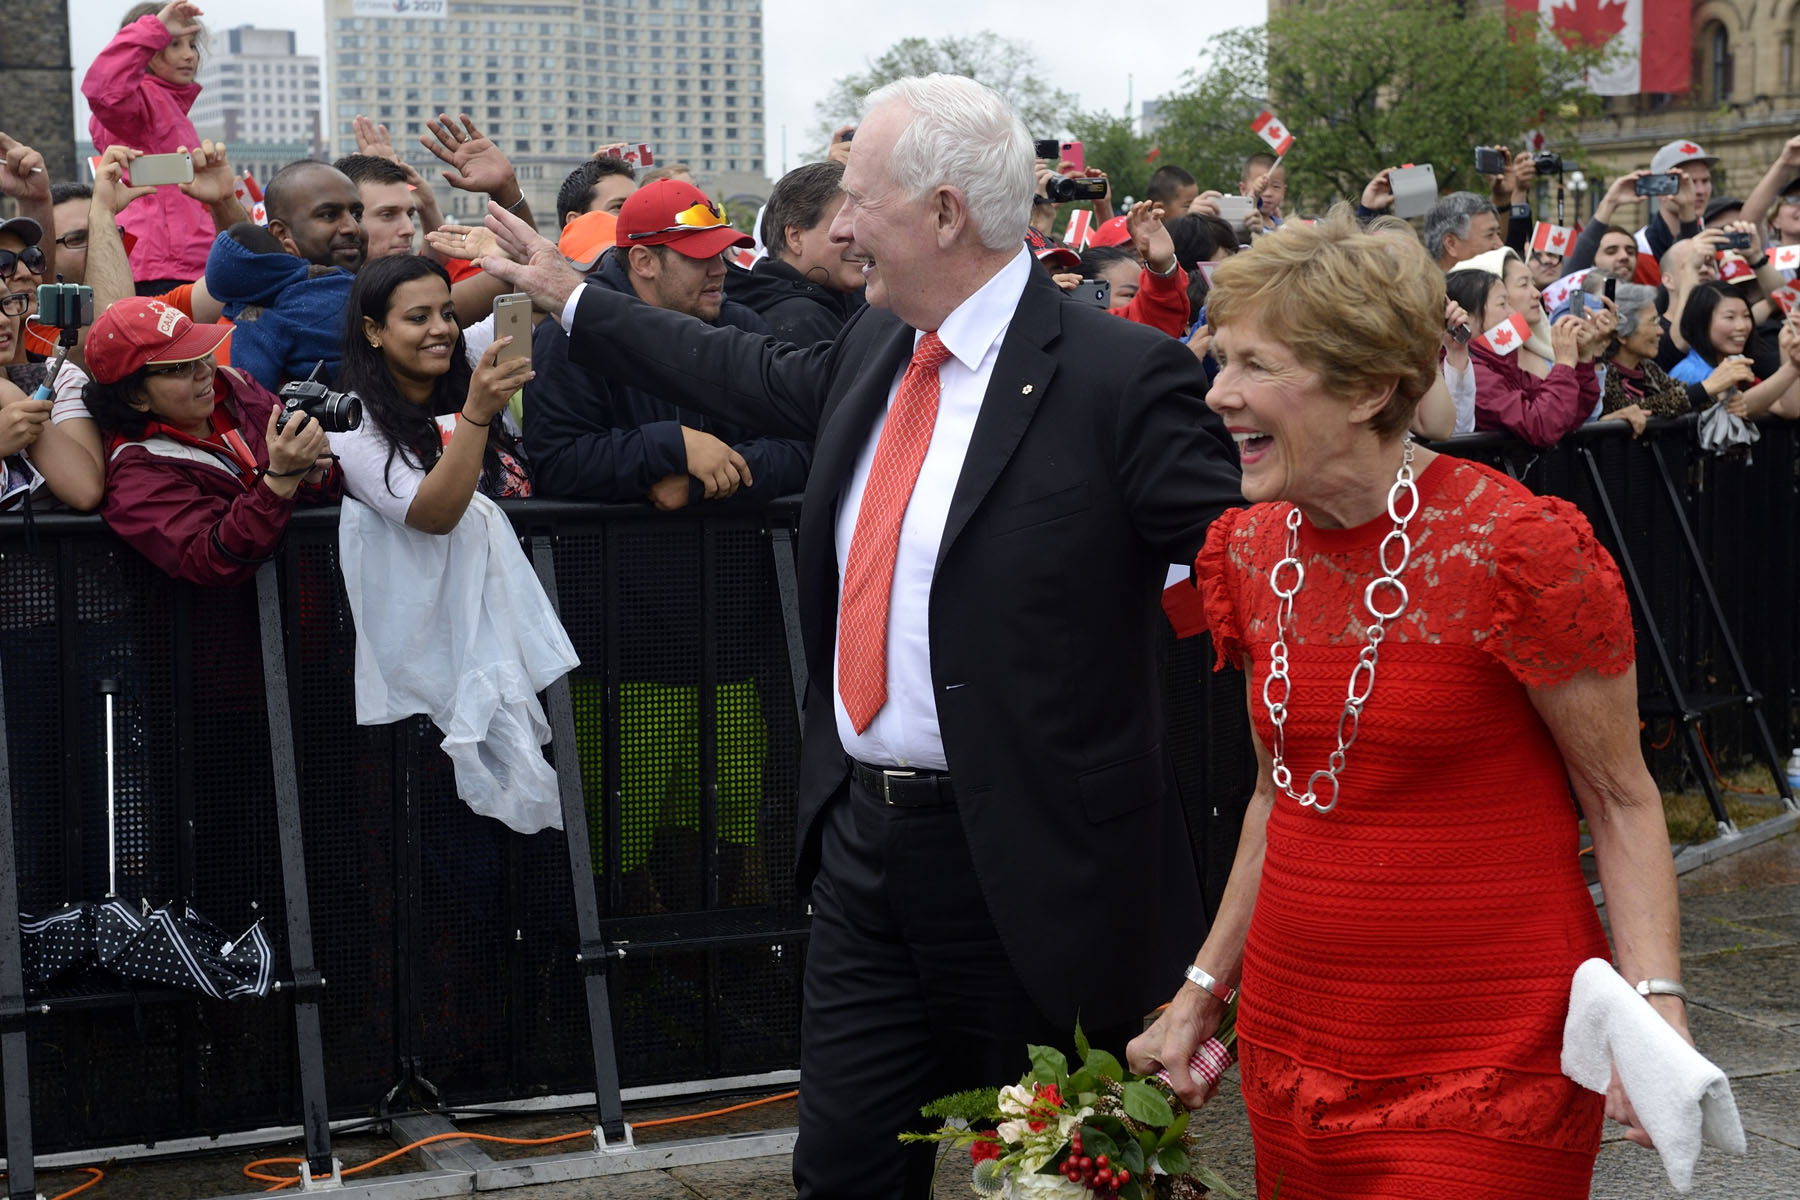 Their Excellencies attended the Canada Day Noon Show on Parliament Hill.